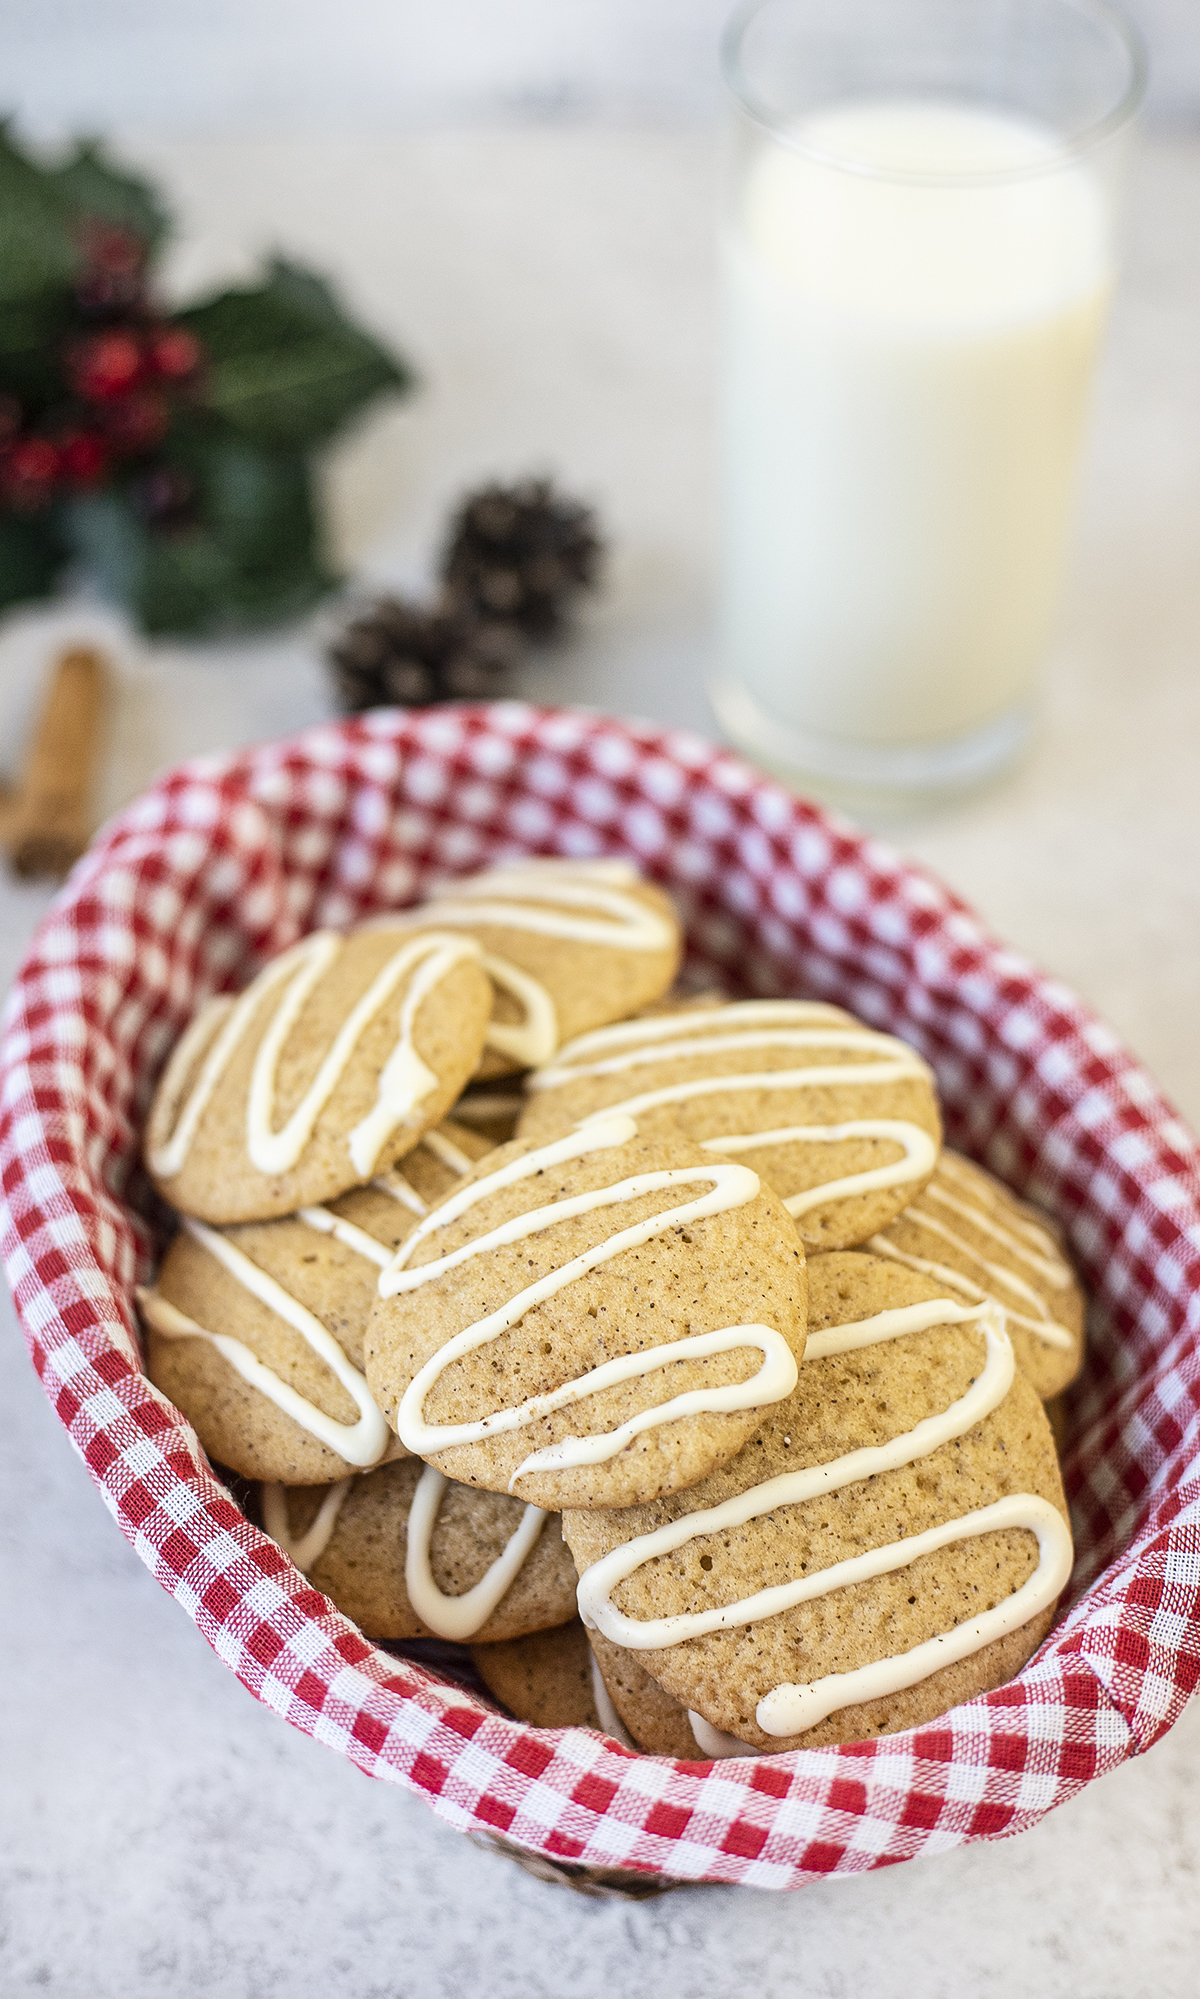 Christmas treats #eggnogcookies #christmasdessert #eggnogdessert #holidaytreat